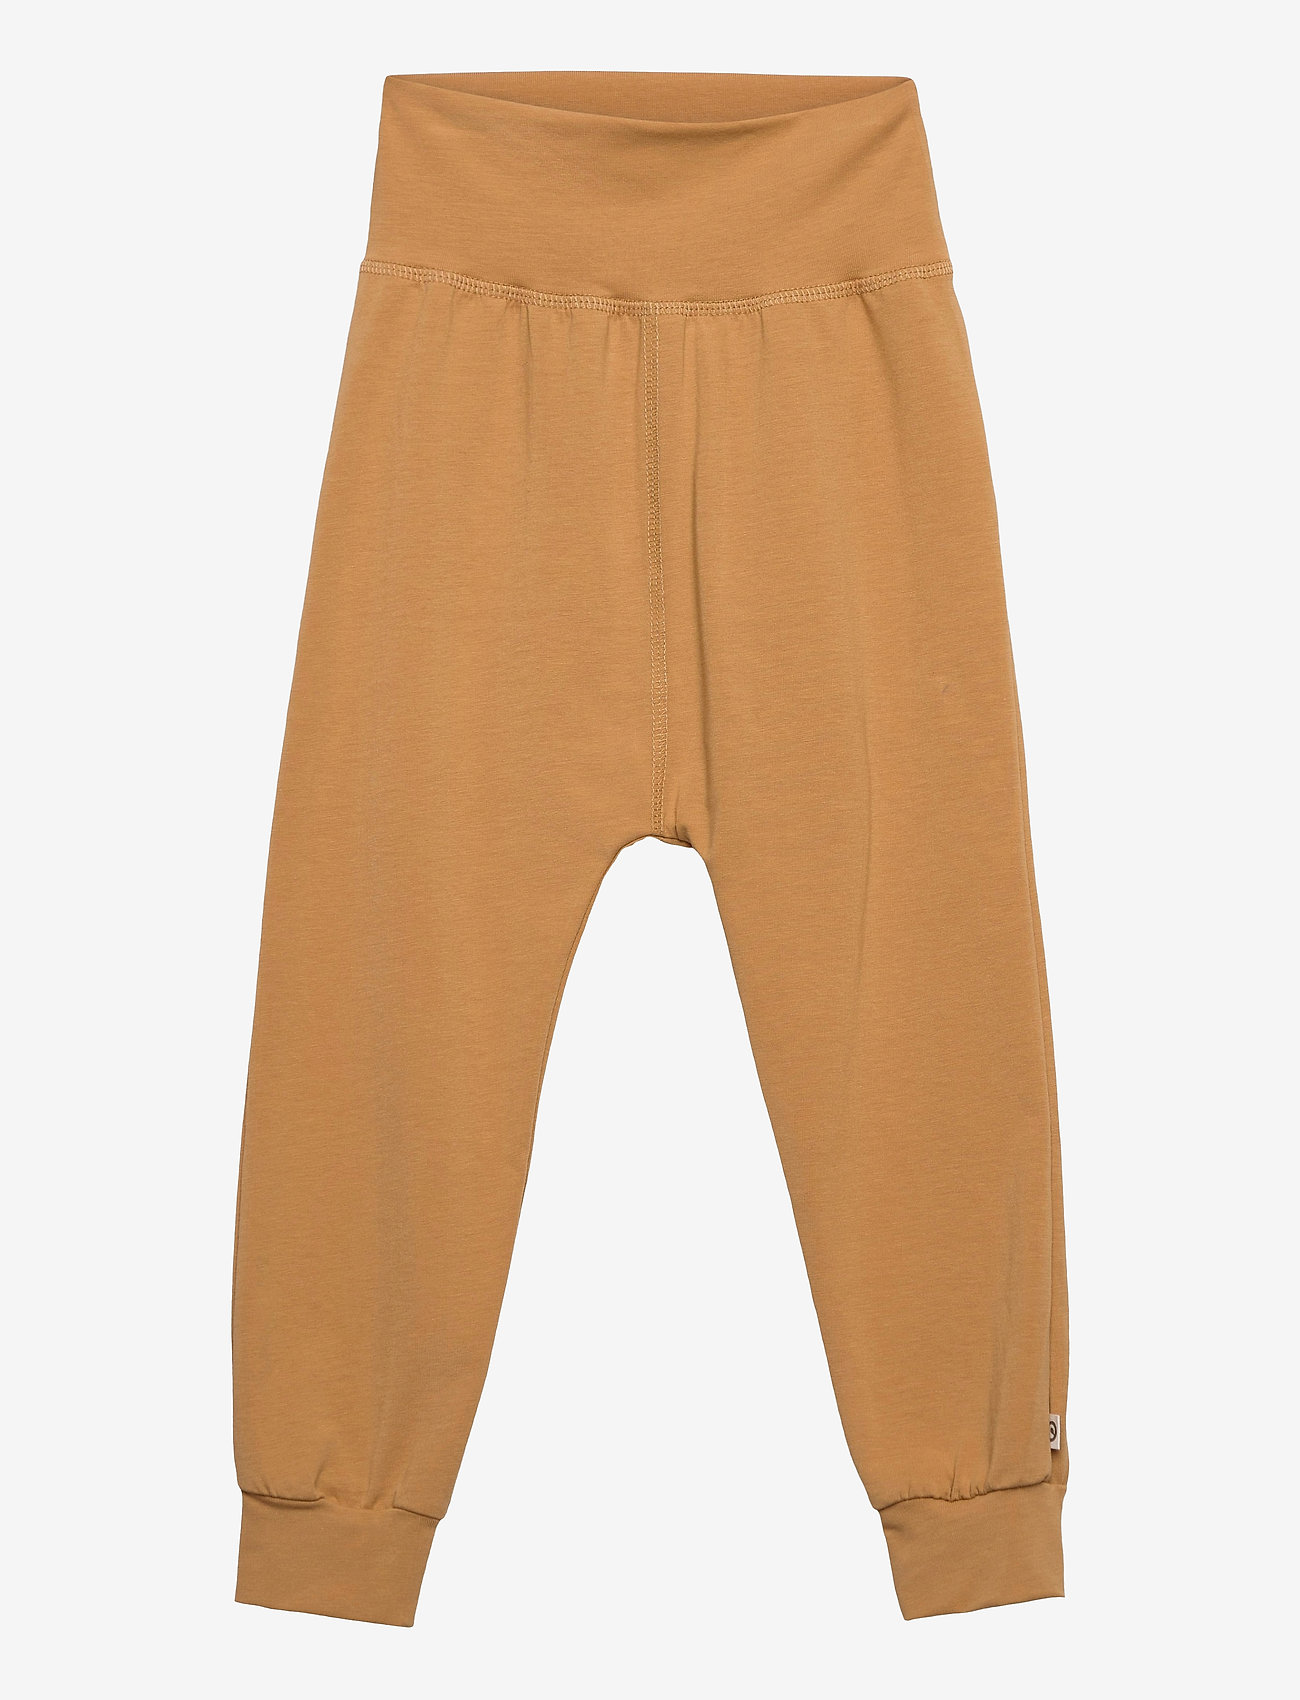 Müsli by Green Cotton - Cozy me pants - trousers - toffee - 0